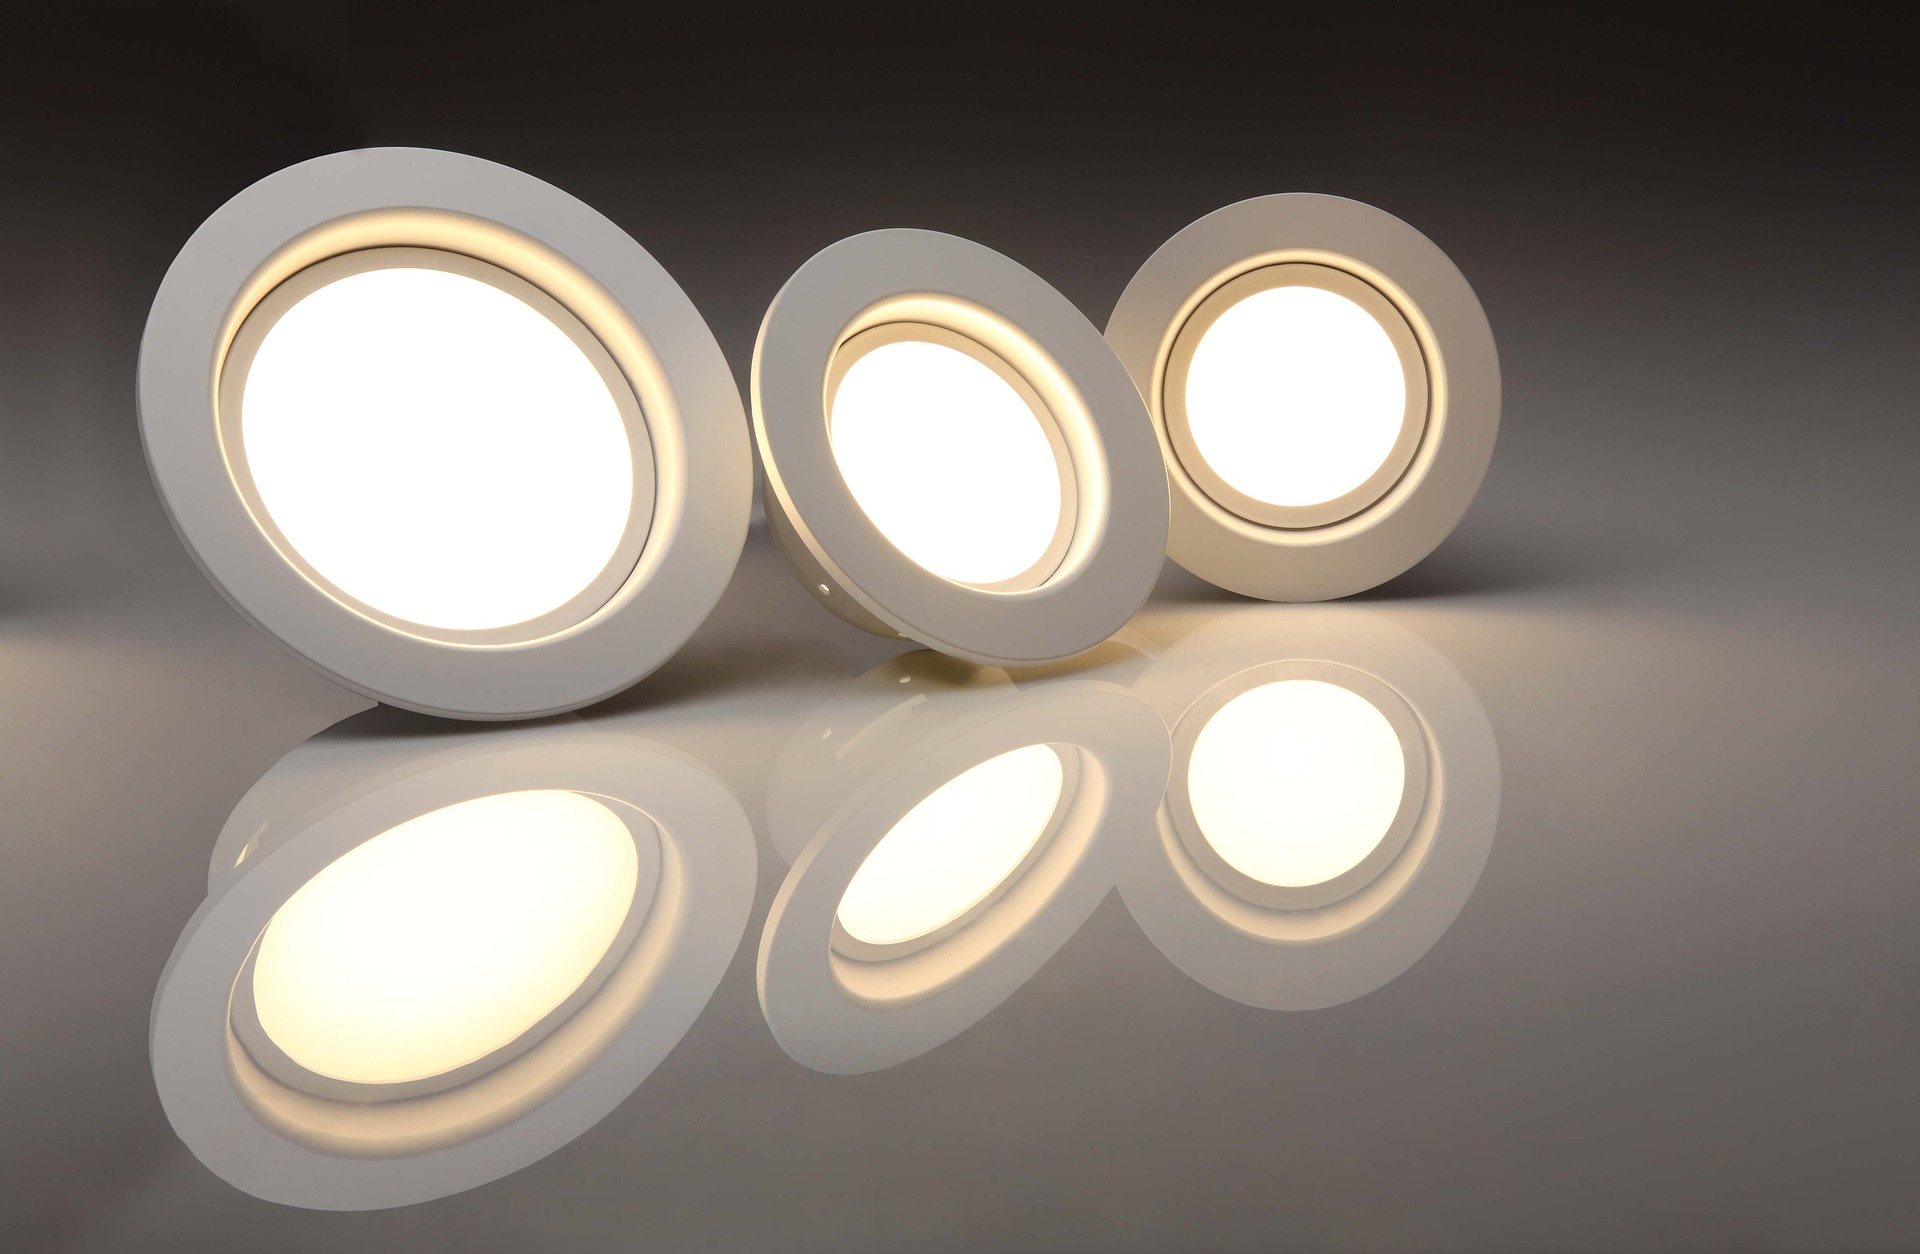 led 823383 1920 - Top 5 trusted energy saving products in 2019